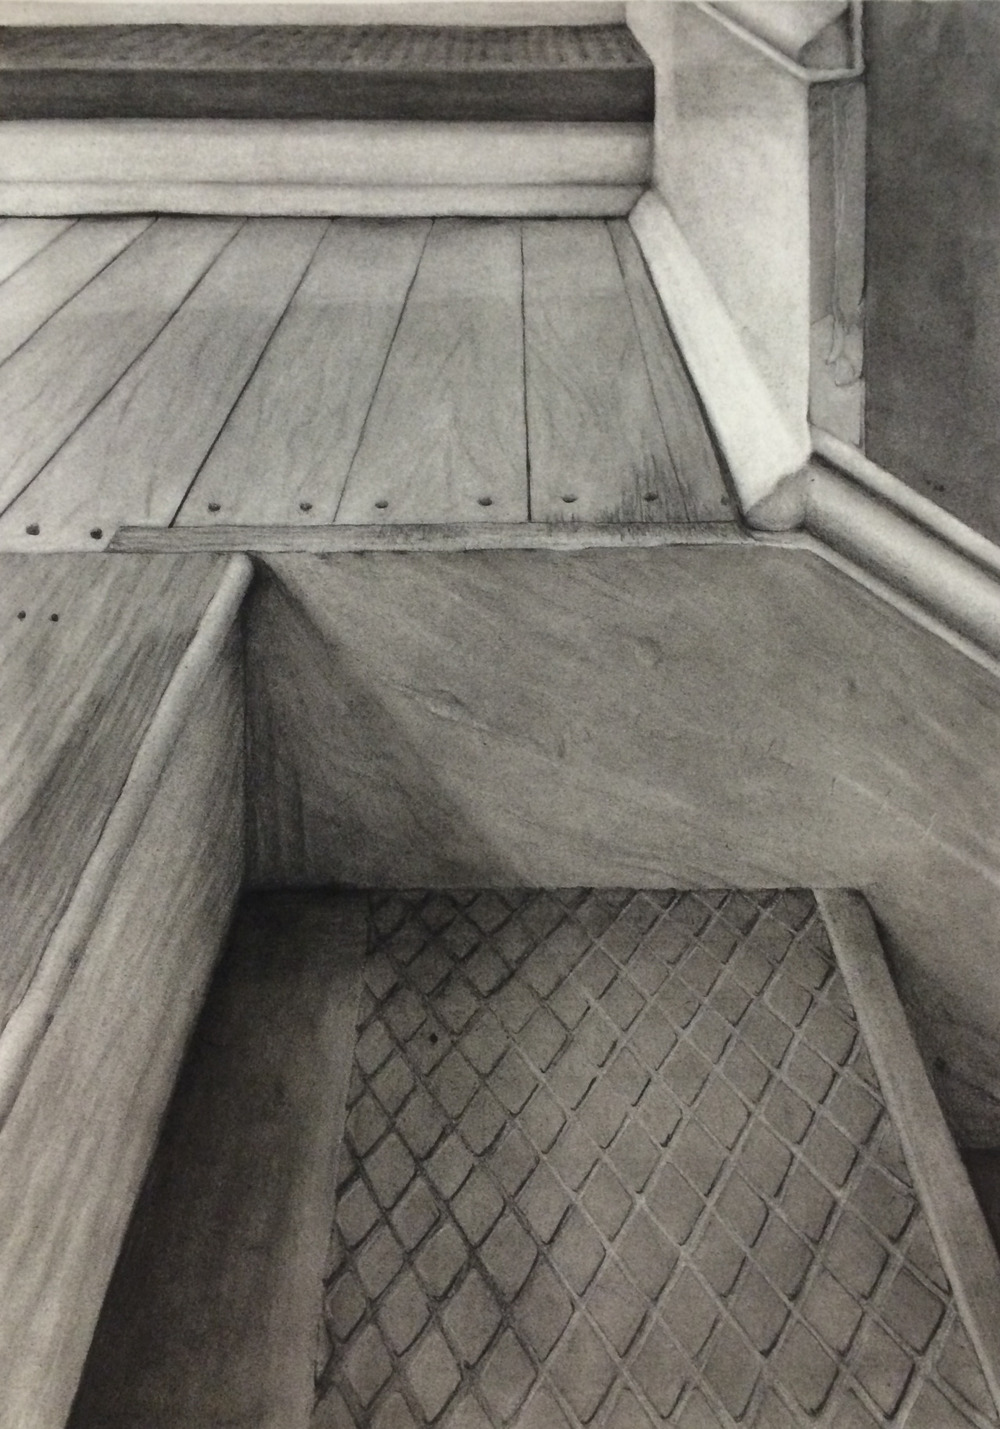 Charcoal, 14x18 in. One-point perspective drawing of the staircase at Wallin Hall, completed for Drawing II class.     Update:  This piece won Third Place in the Black and White Drawing category of the 2014 Foundation Honors Show!